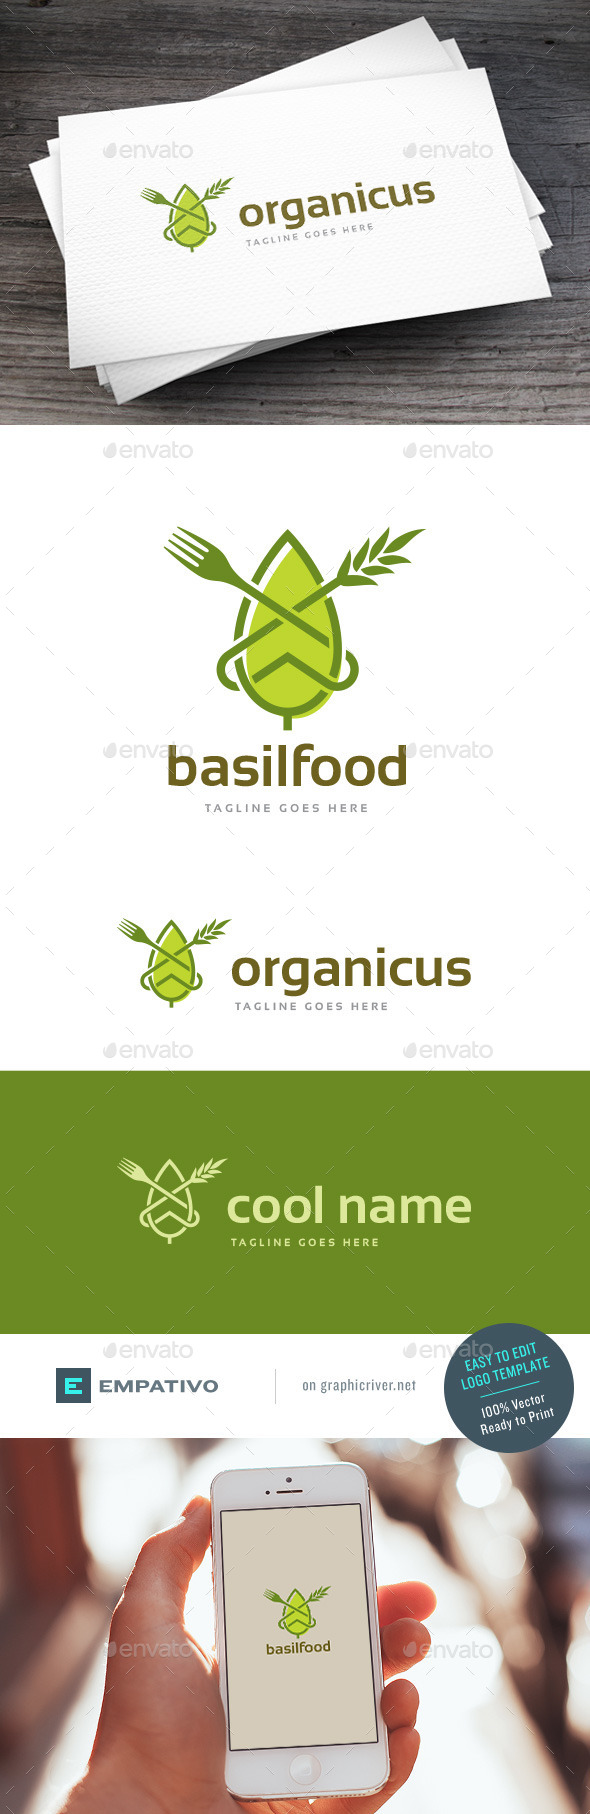 GraphicRiver Basilfood Logo Template 11579898